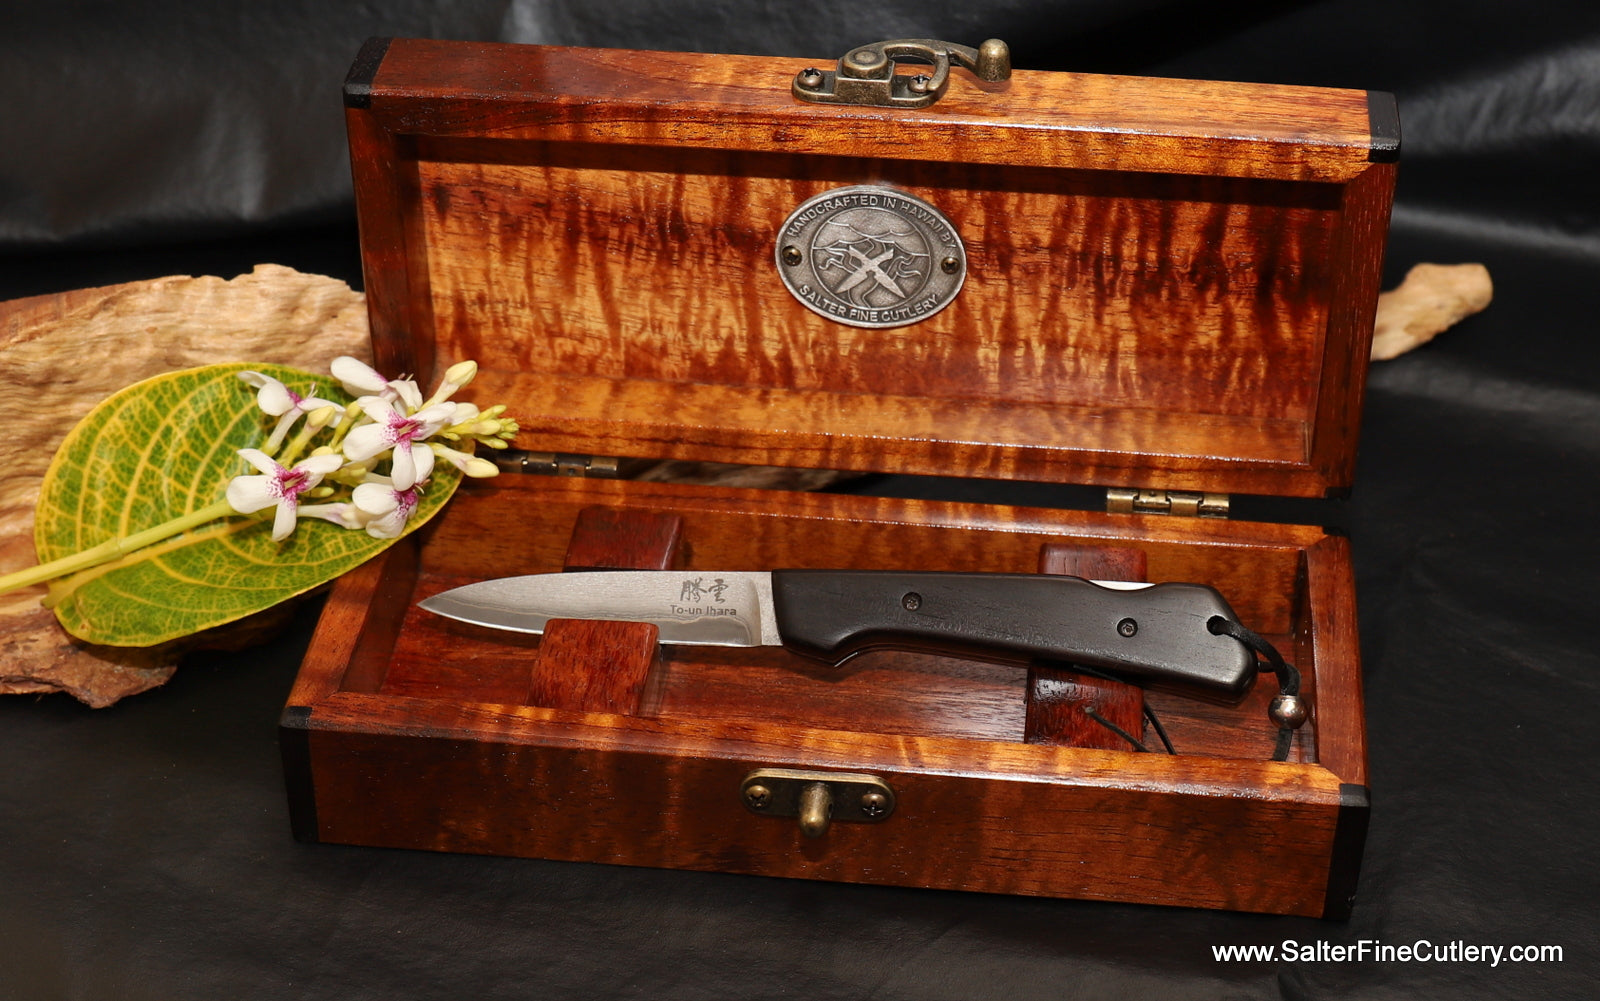 In Stock Item:  3-Inch Folding Knife with Keepsake Box